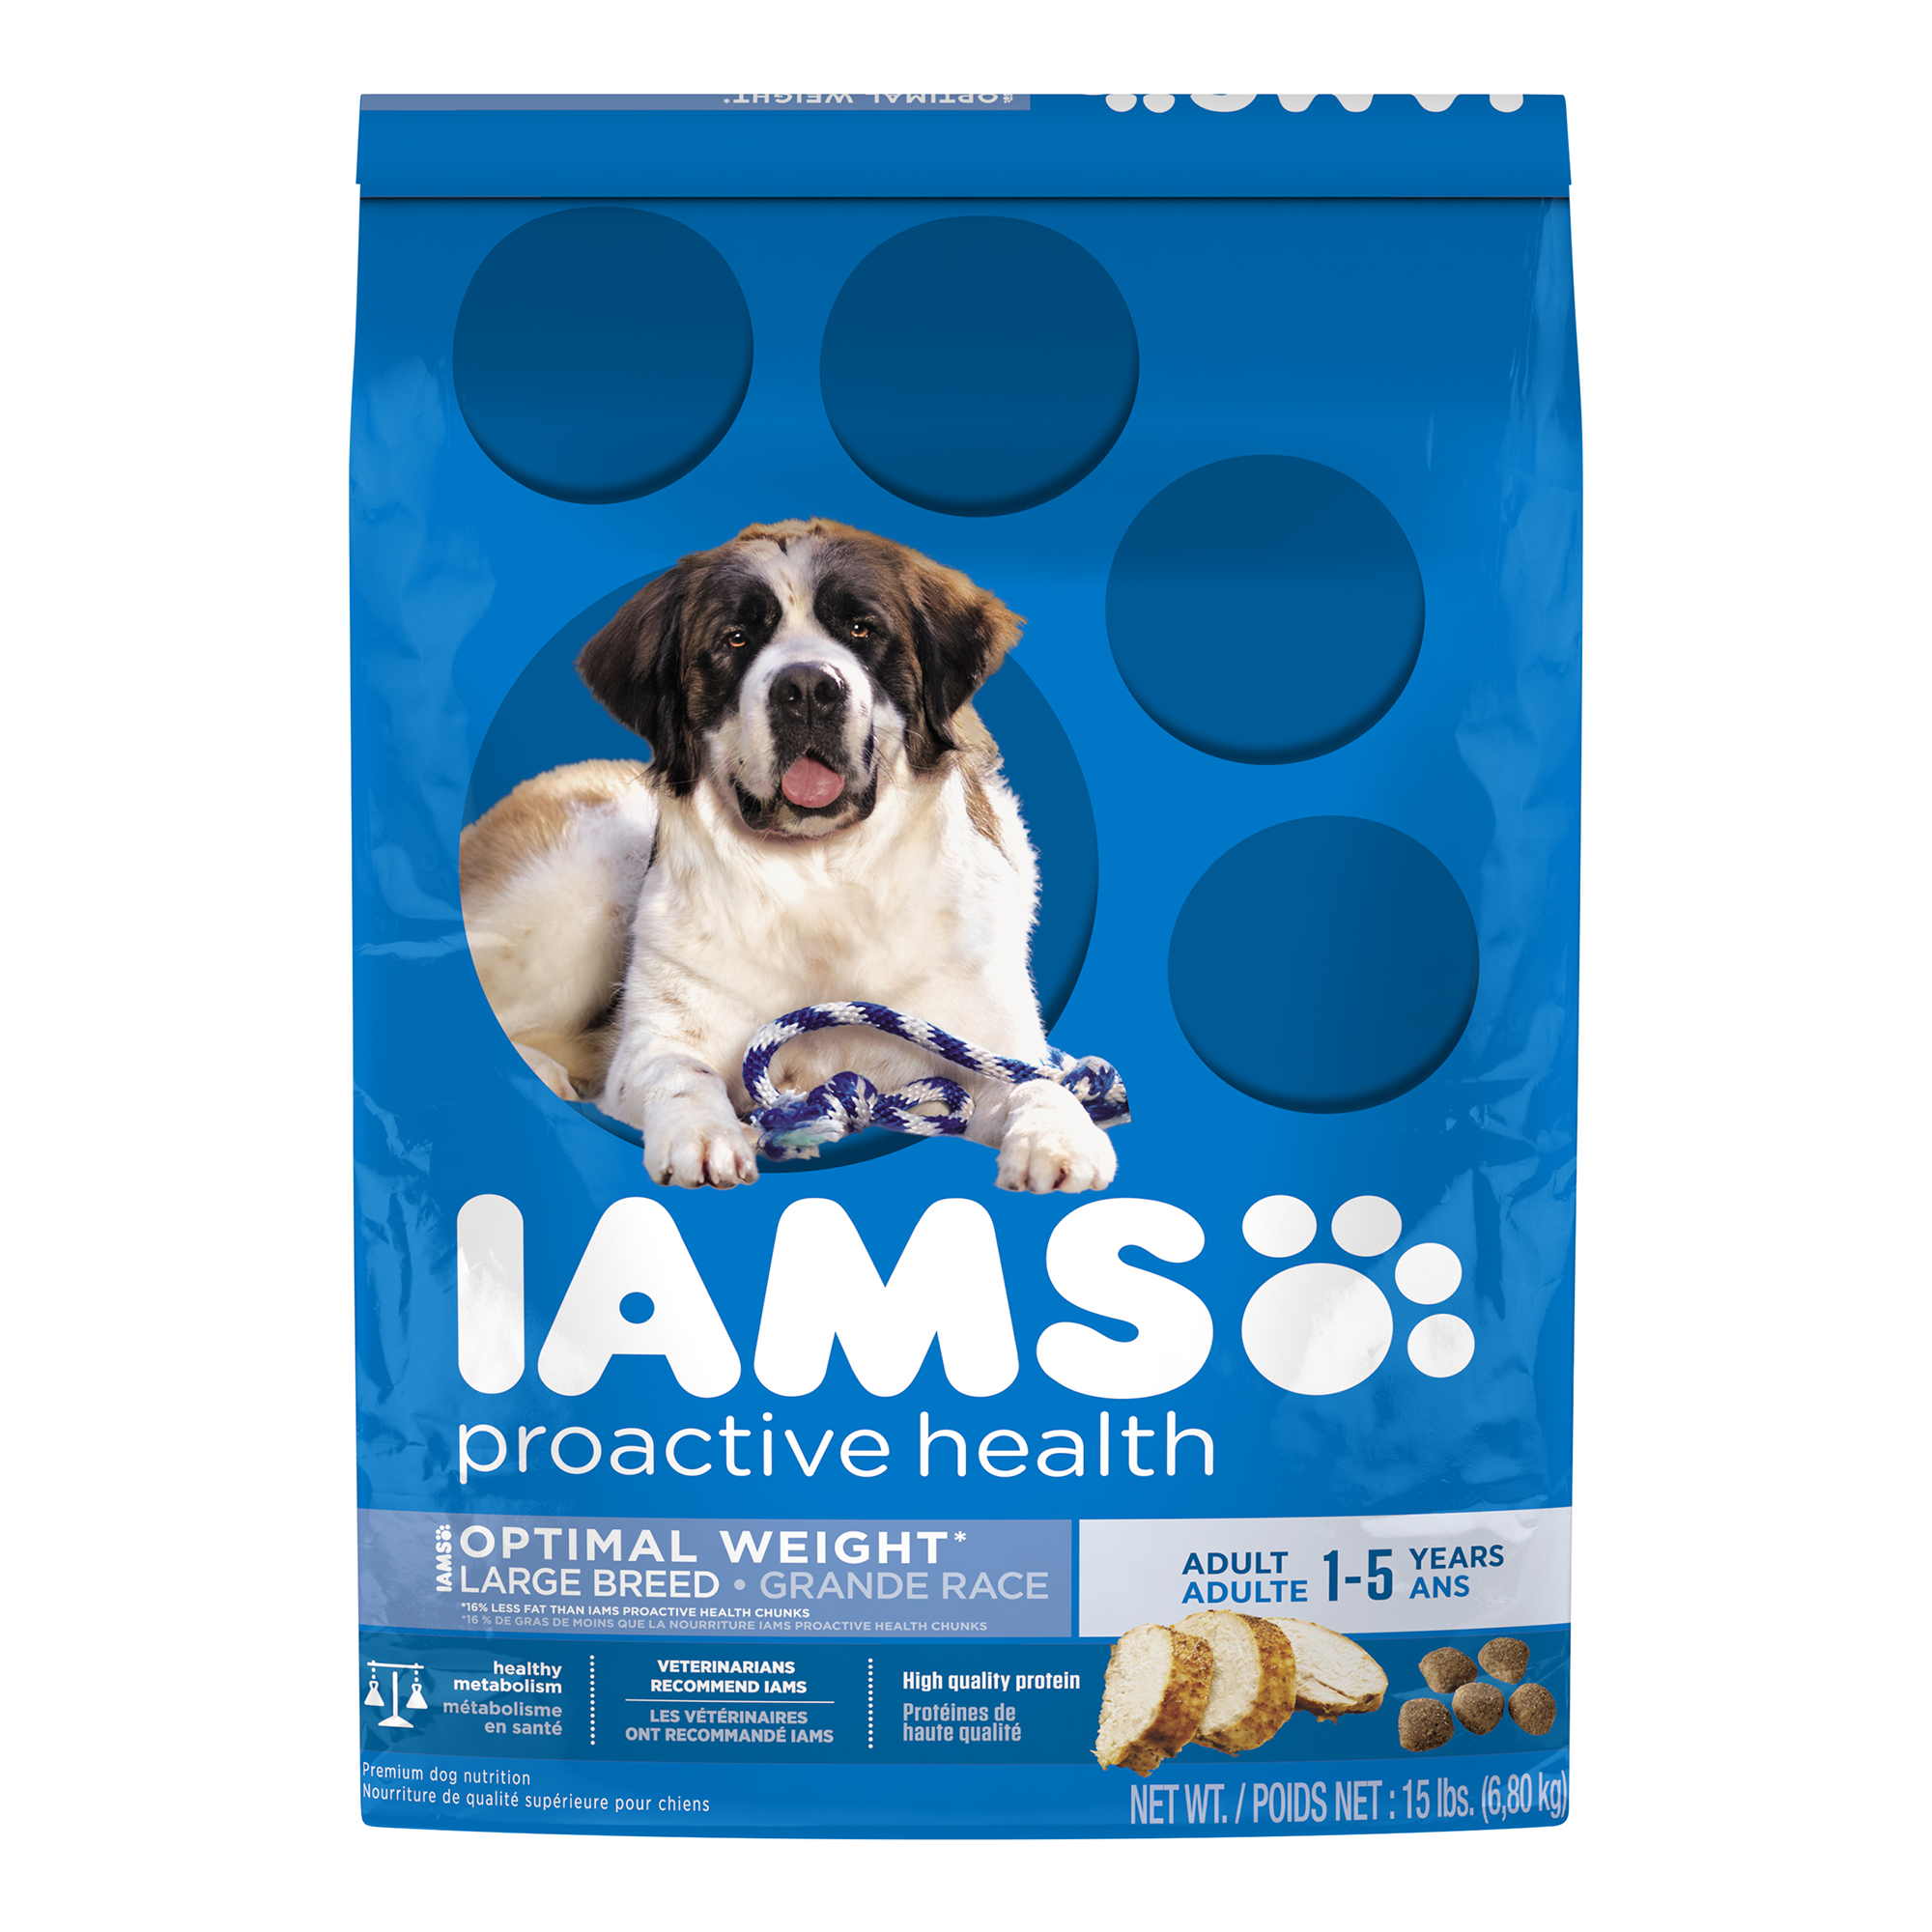 IAMS PROACTIVE HEALTH Adult Large Breed Weight Control Dry Dog Food 15 Pounds